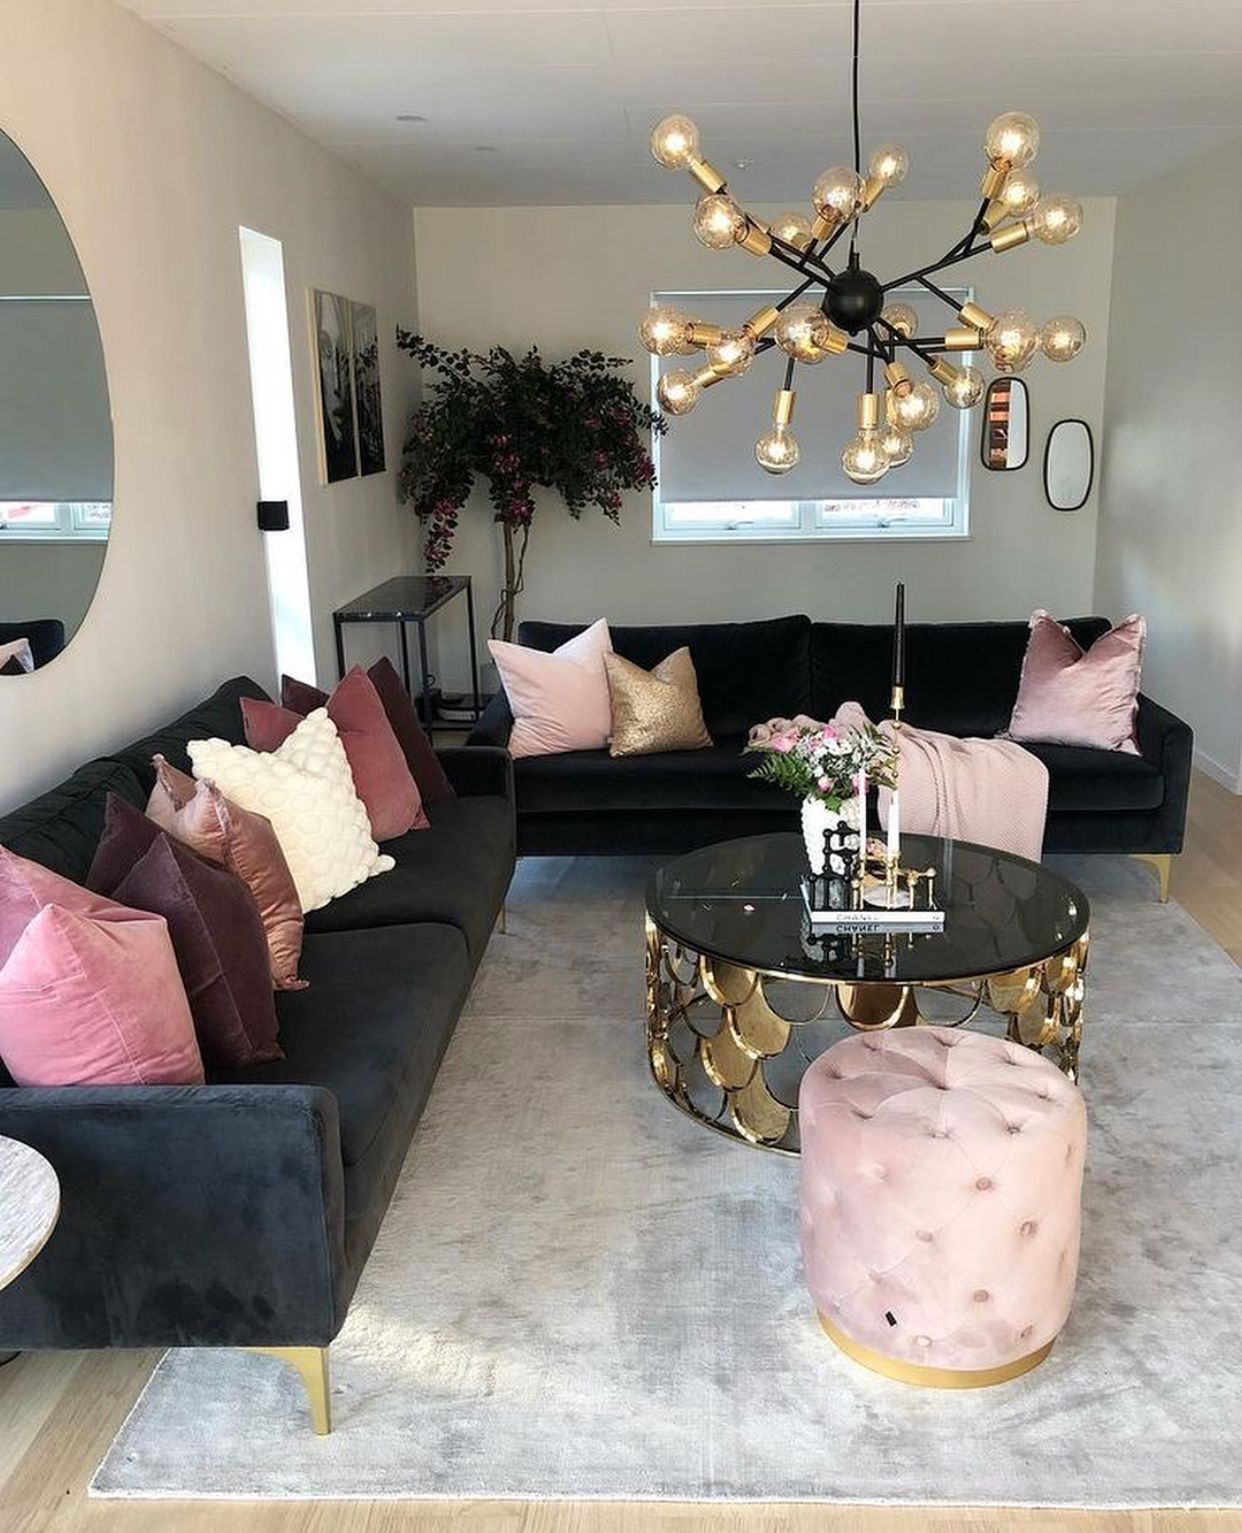 Modern Glam Living Room Decorating Ideas 19: Living Room Image By Saby Gonzalez